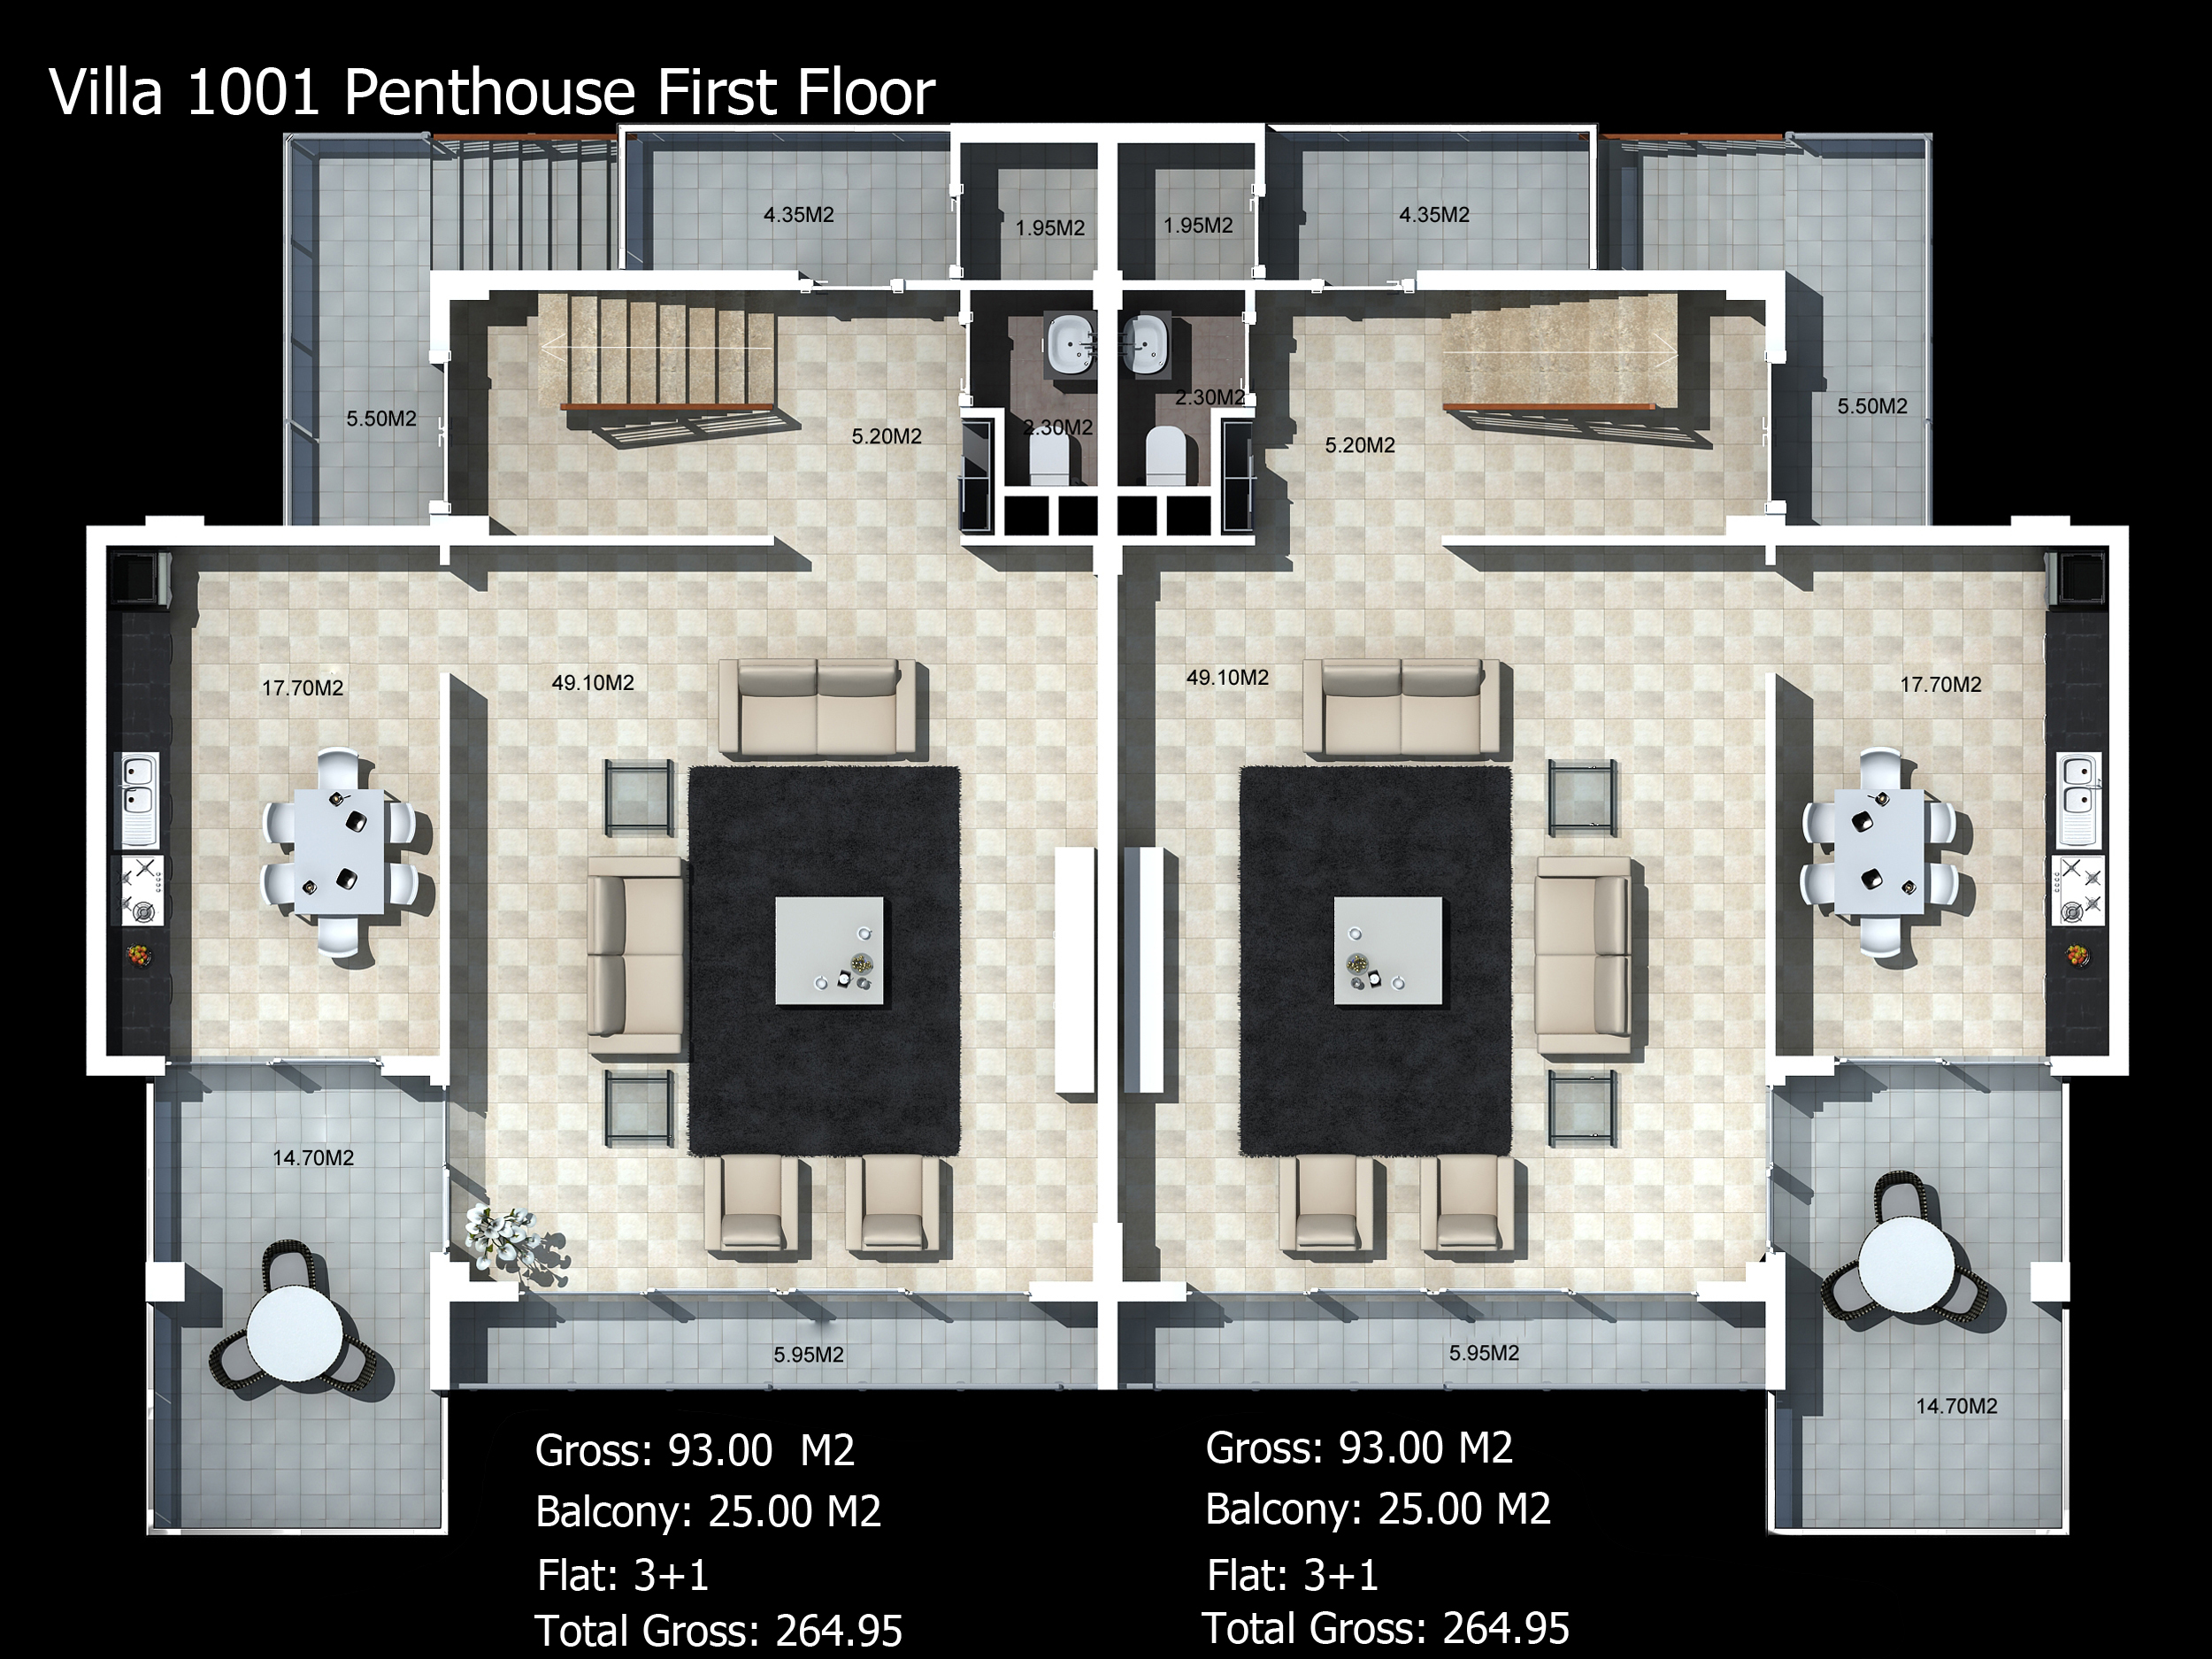 villa-1001-penthouse-first-floor